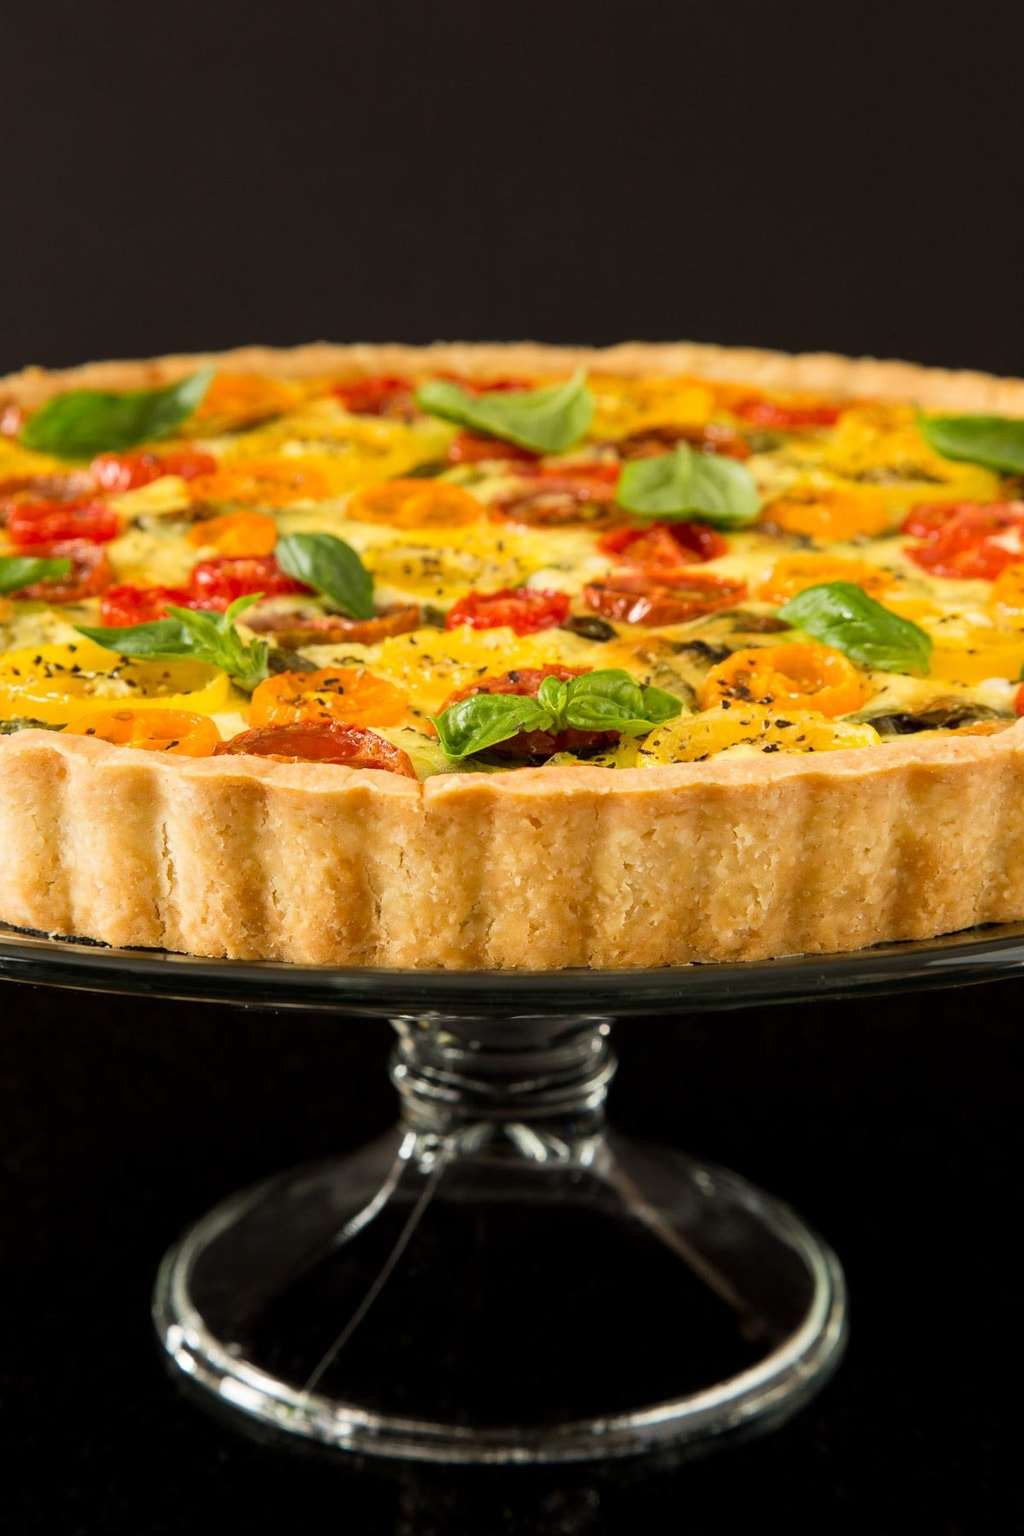 Vertical photo of a Tomato Basil and Fresh Mozzarella Tart on a glass pedestal stand against a black background.